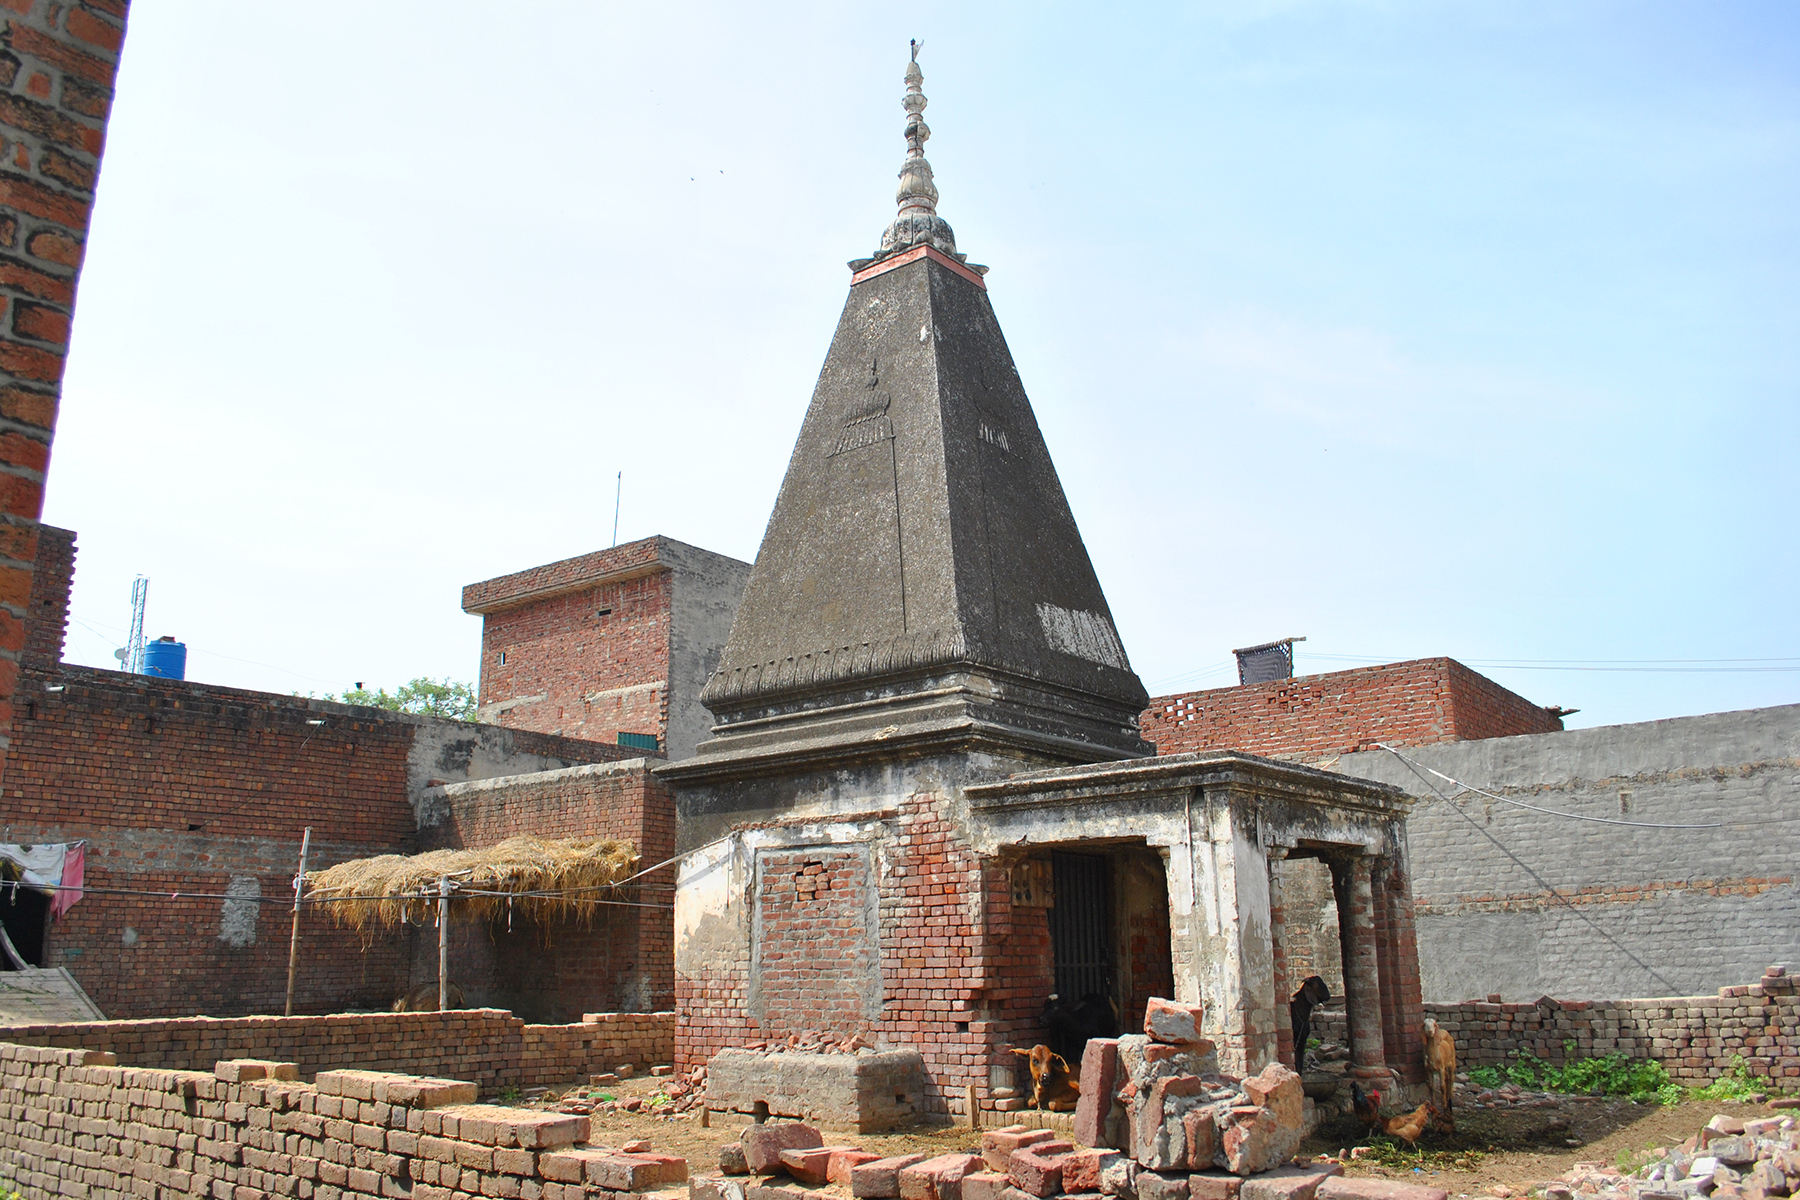 The temples are being used as cattle yards.